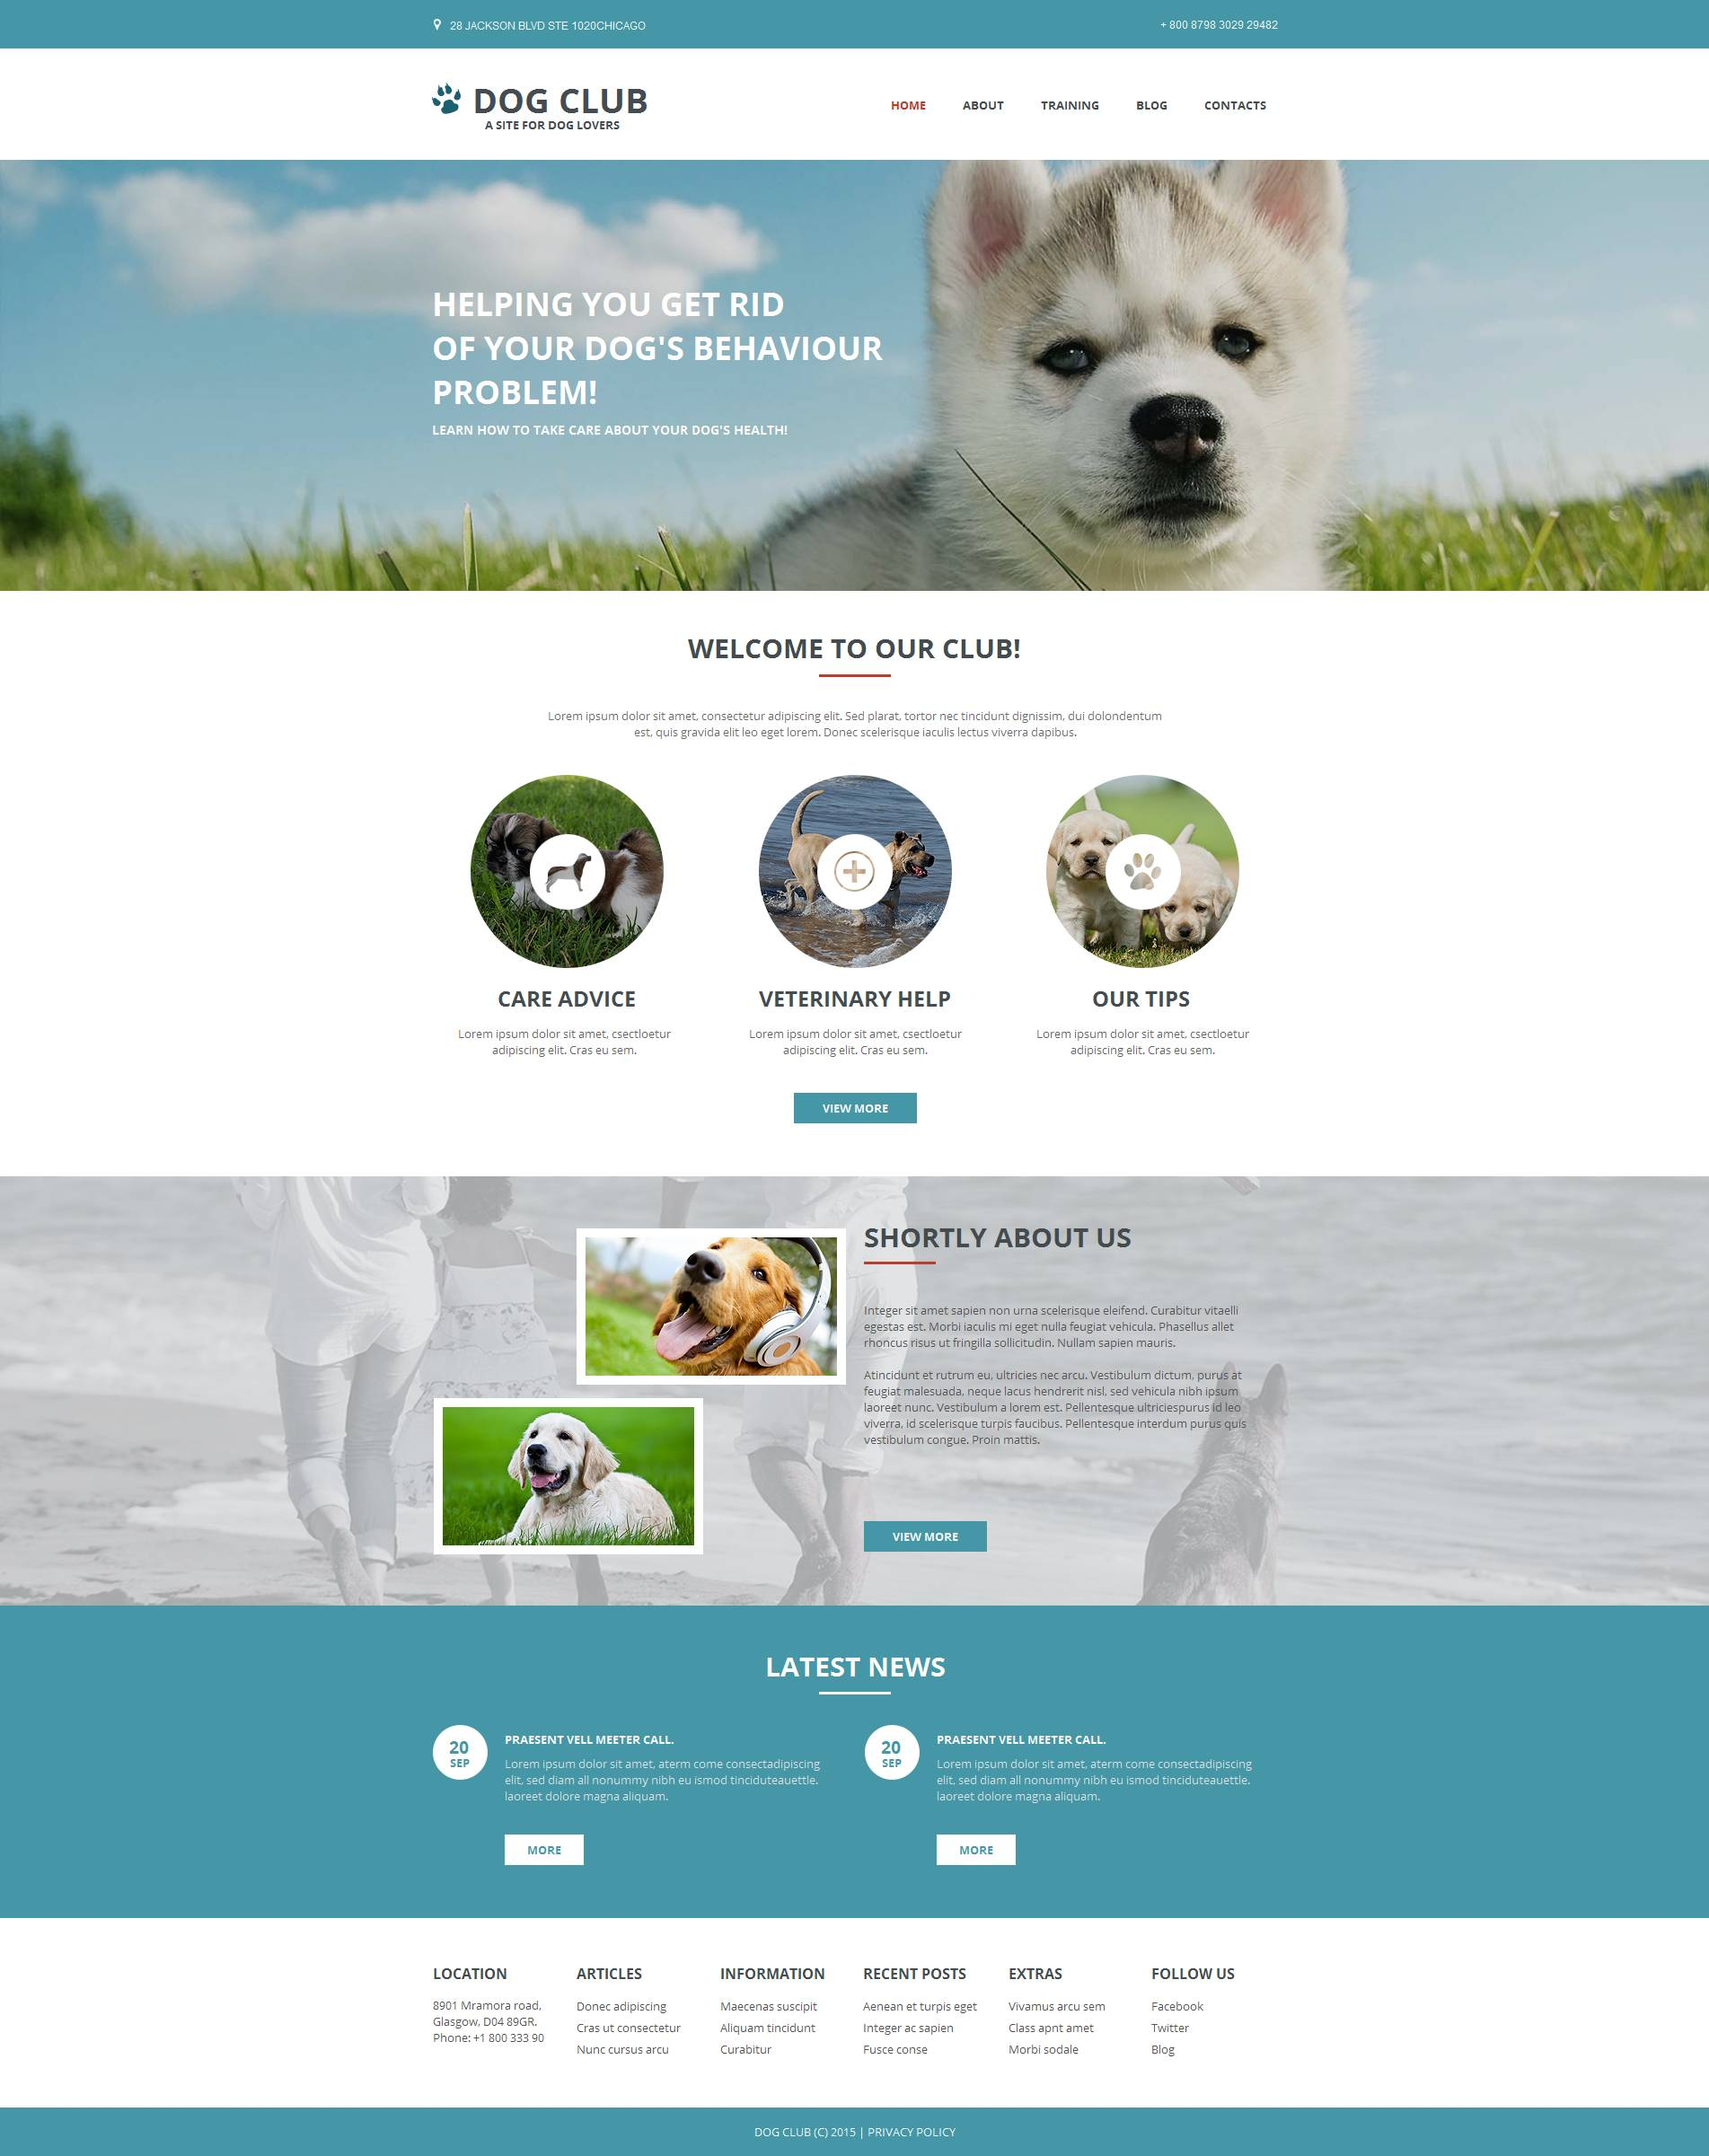 The Dog Club Moto CMS HTML Design 53048, one of the best Moto CMS HTML templates of its kind (animals & pets, most popular), also known as dog club Moto CMS HTML template, pet Moto CMS HTML template, animal Moto CMS HTML template, shows Moto CMS HTML template, certificates Moto CMS HTML template, animals Moto CMS HTML template, cat Moto CMS HTML template, puppy Moto CMS HTML template, training Moto CMS HTML template, pet Moto CMS HTML template, dogs Moto CMS HTML template, dog Moto CMS HTML template, breeder Moto CMS HTML template, pedigree Moto CMS HTML template, forage Moto CMS HTML template, feed and related with dog club, pet, animal, shows, certificates, animals, cat, puppy, training, pet, dogs, dog, breeder, pedigree, forage, feed, etc.